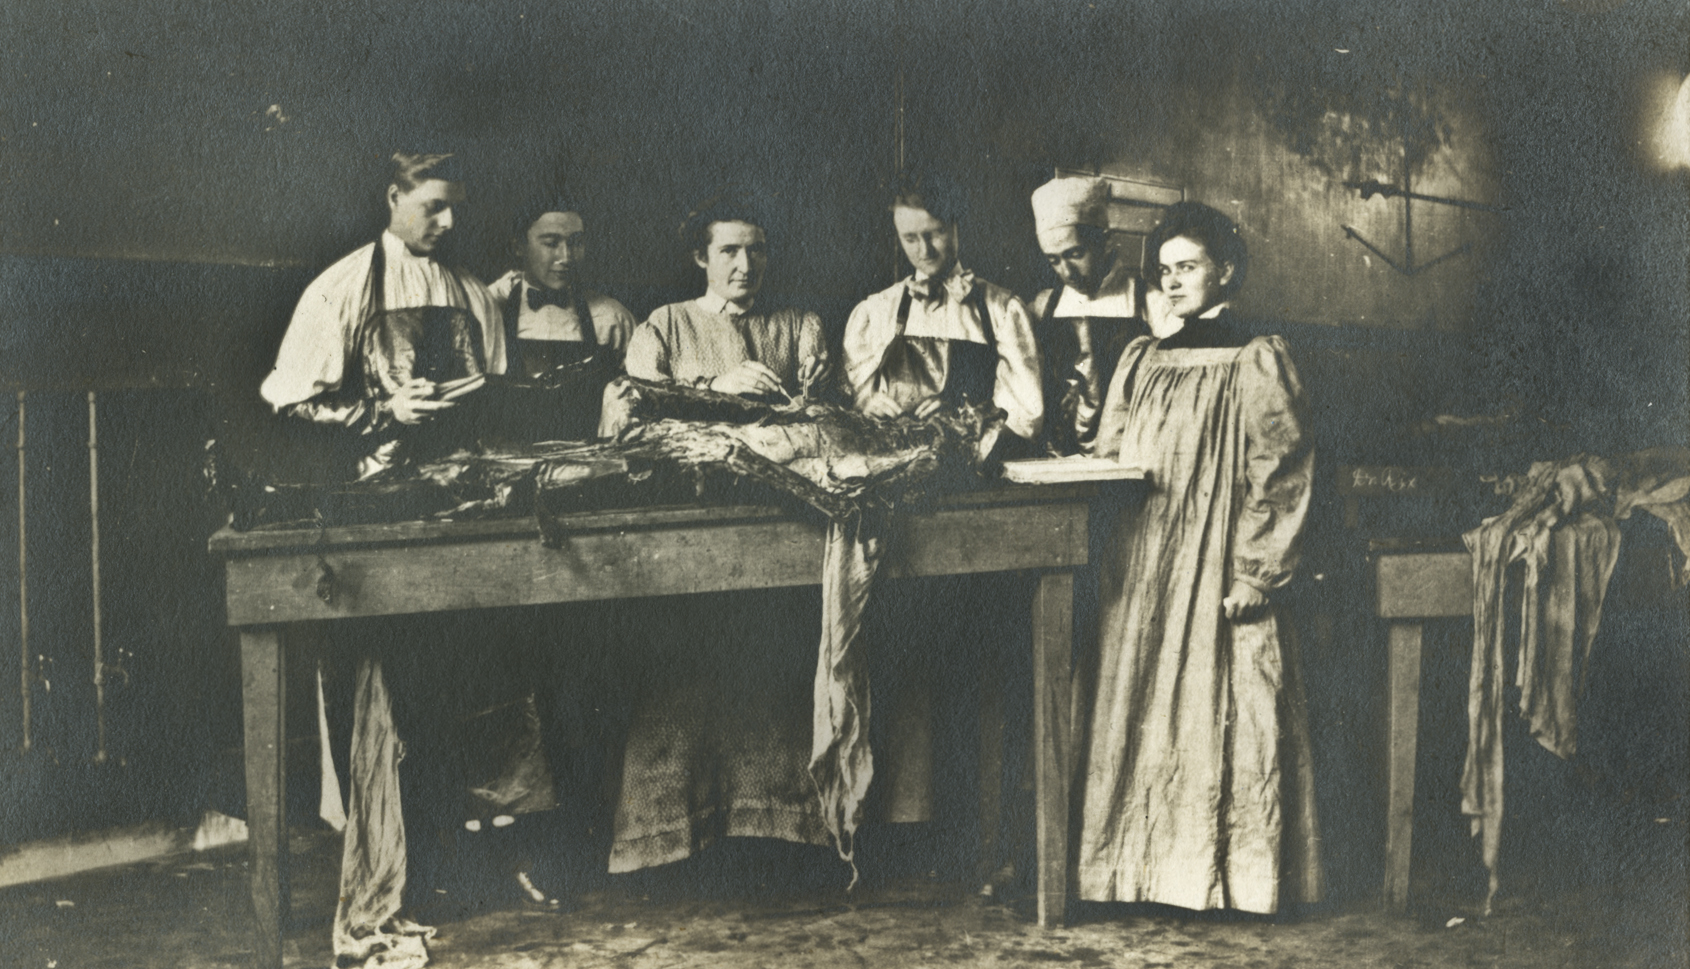 dissectiongroup